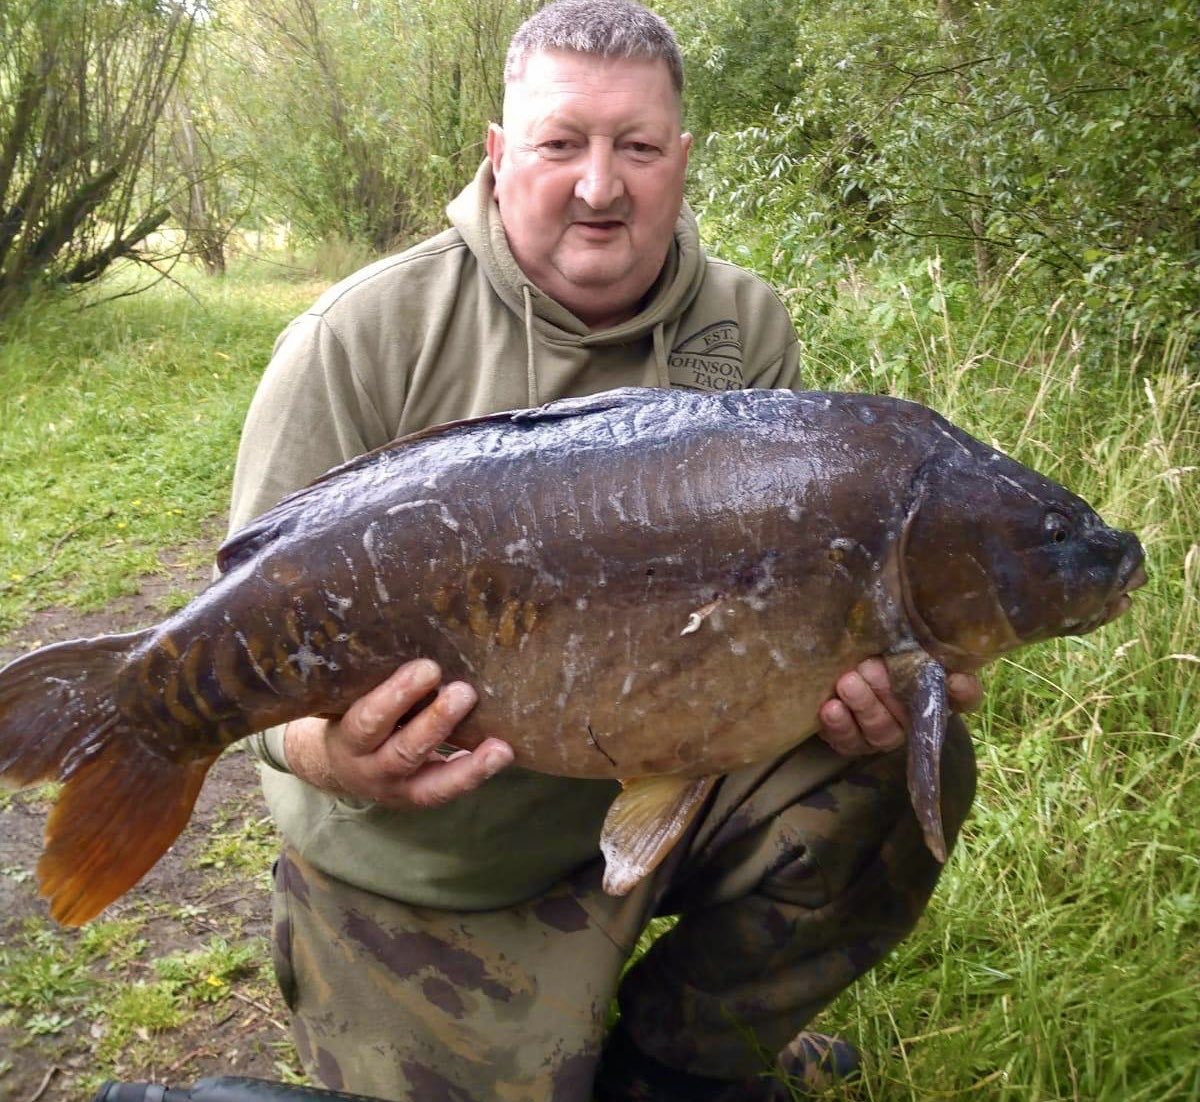 New member Ashley with his first #carp from @stgeorgeslake 29lb 2oz #carpfishing #<b>Bigcarp</b> #ca